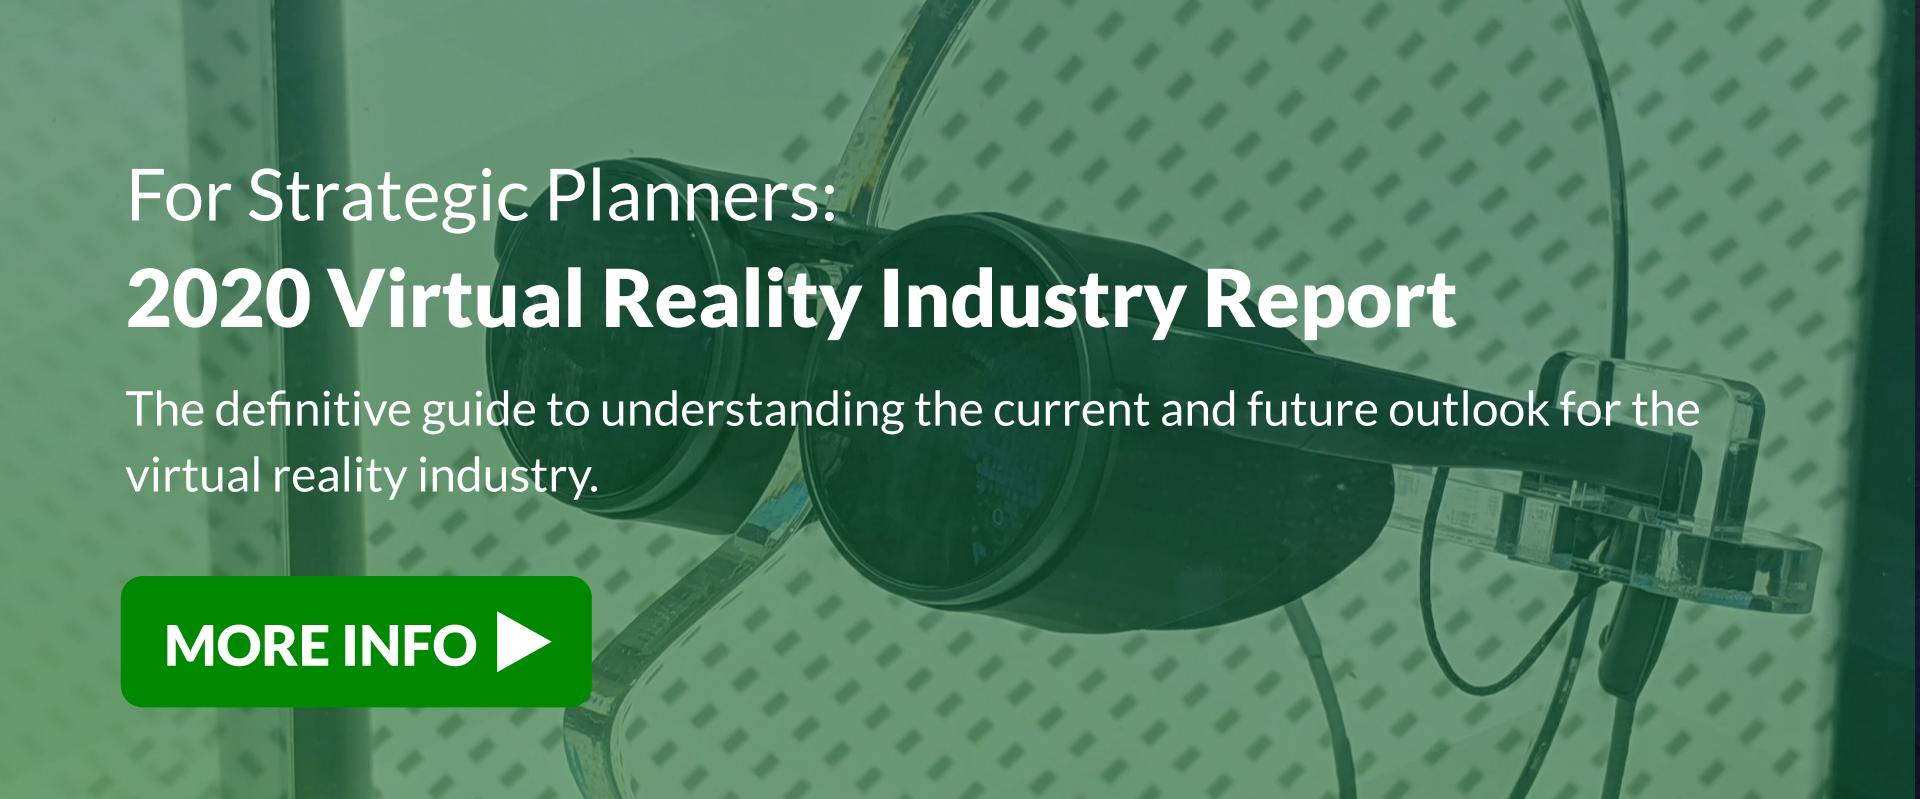 2020 Virtual Reality Industry Report